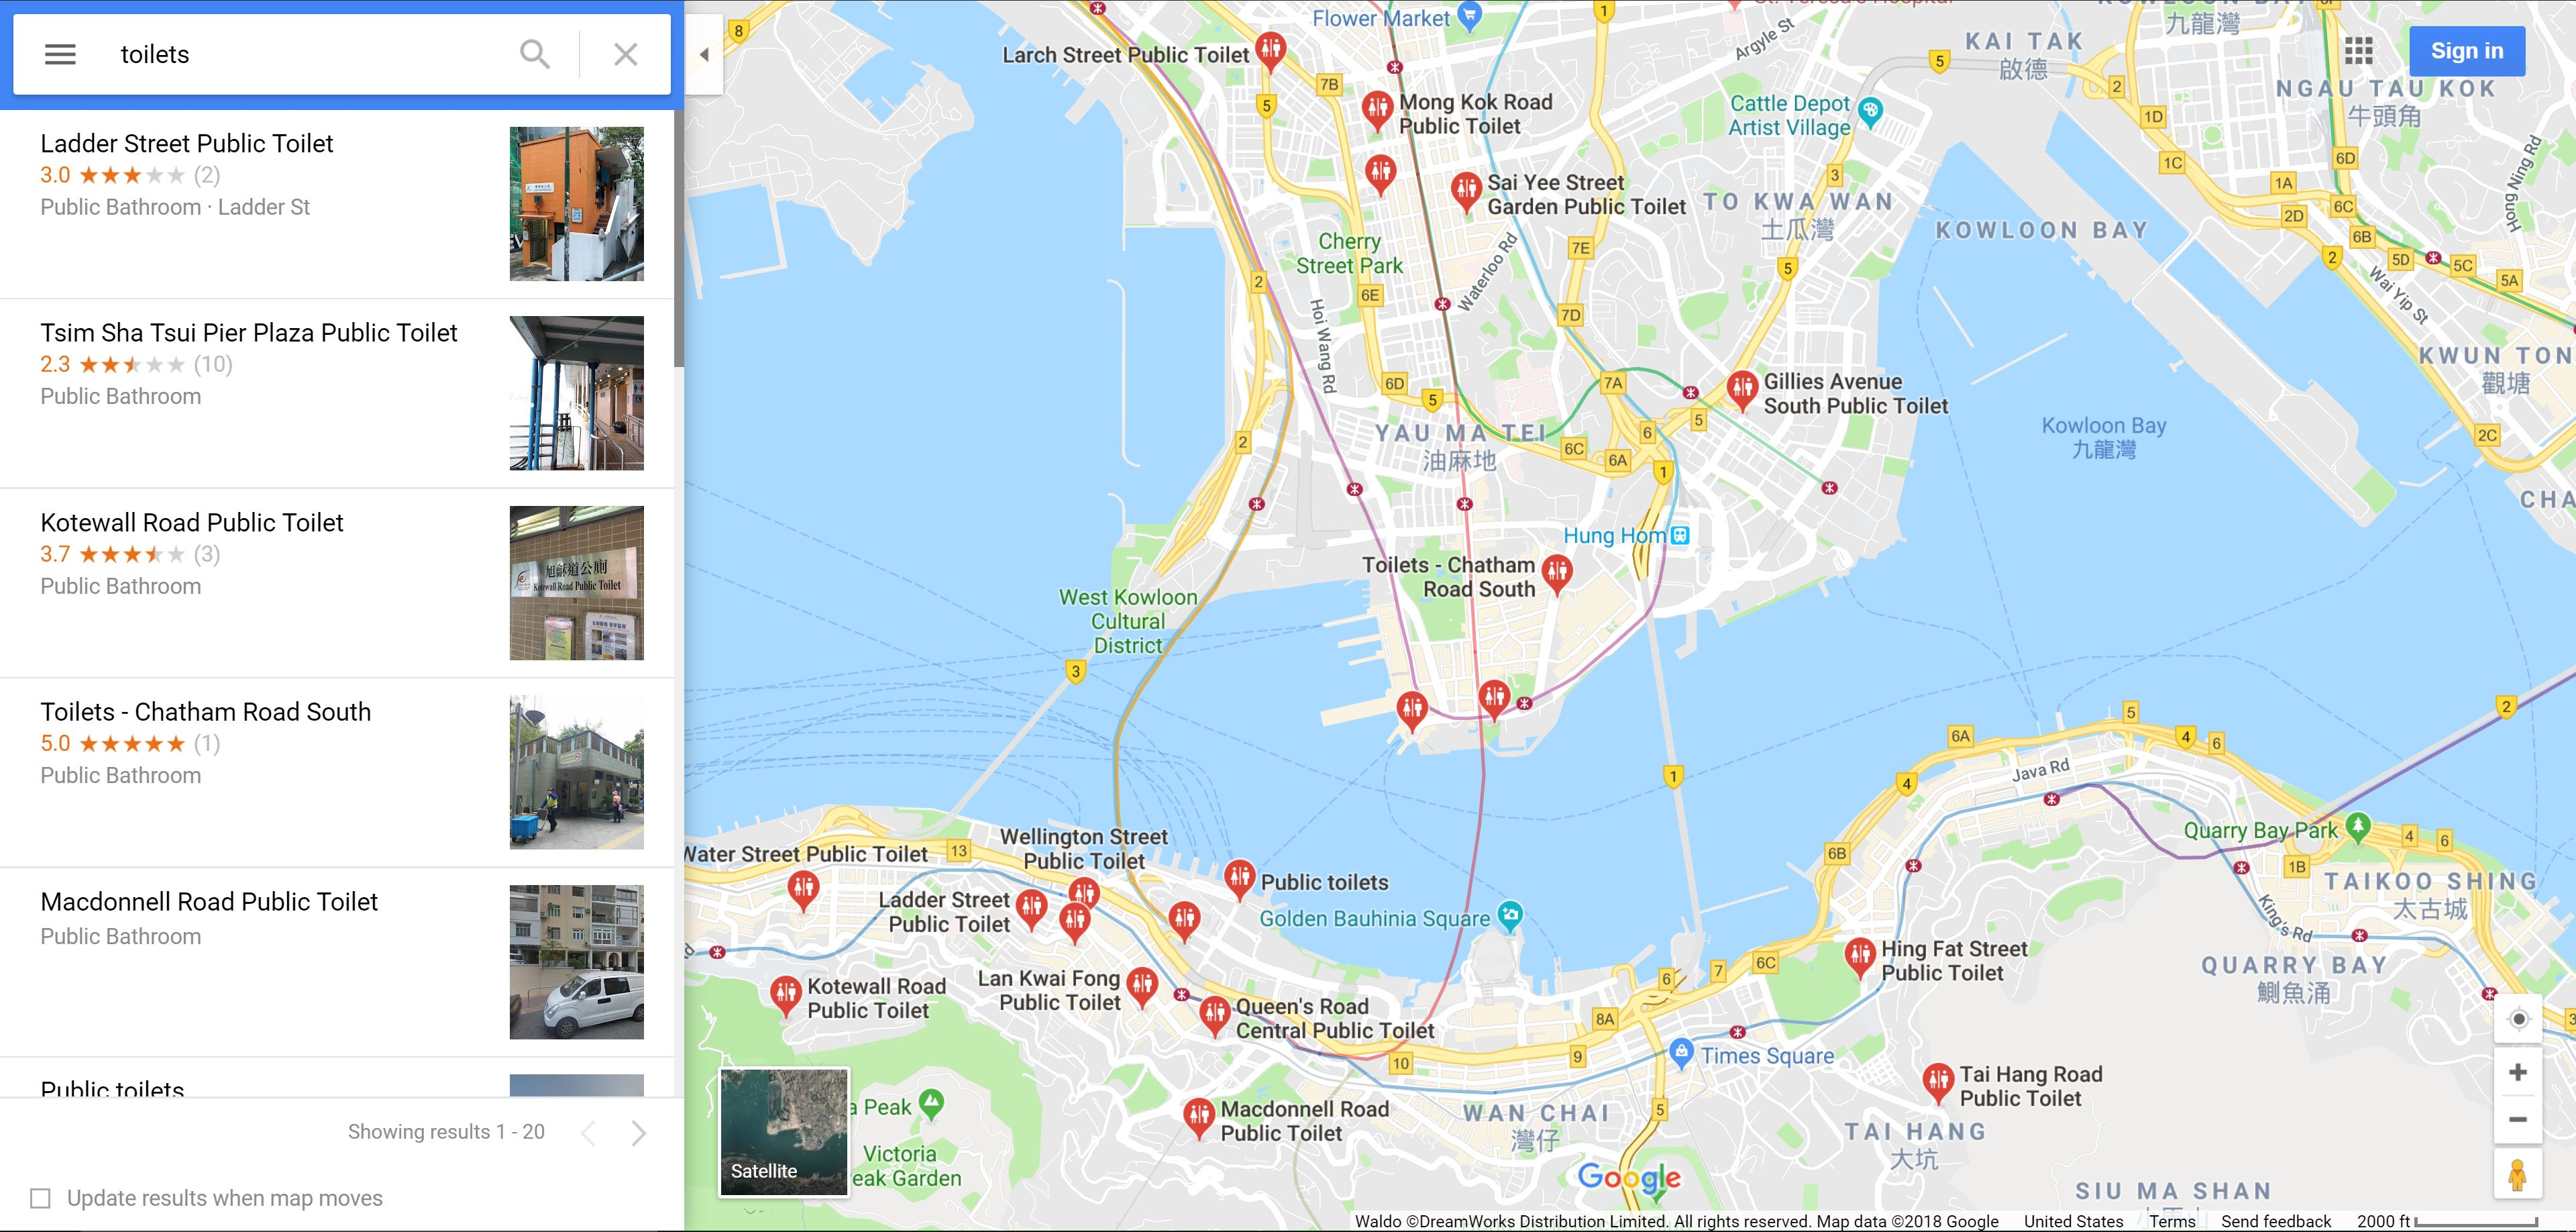 Travel Tip of the Week: If You Need to Go in Hong Kong. Use Google Maps - Gate to Adventures